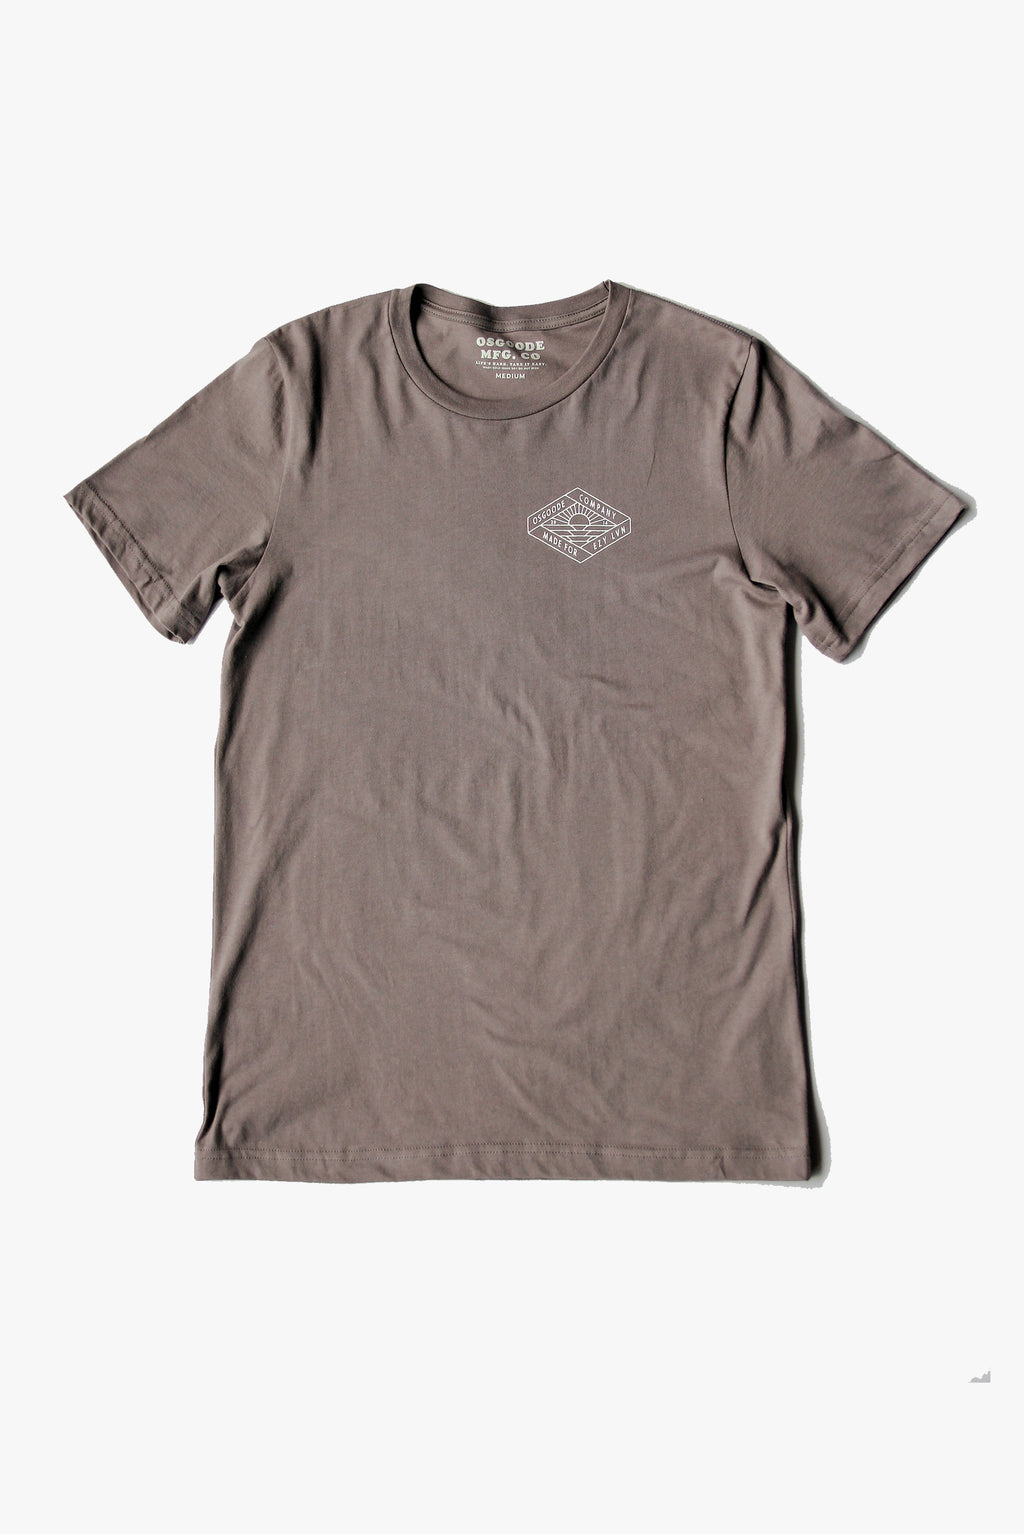 REGALIA T-SHIRT PEBBLE BROWN